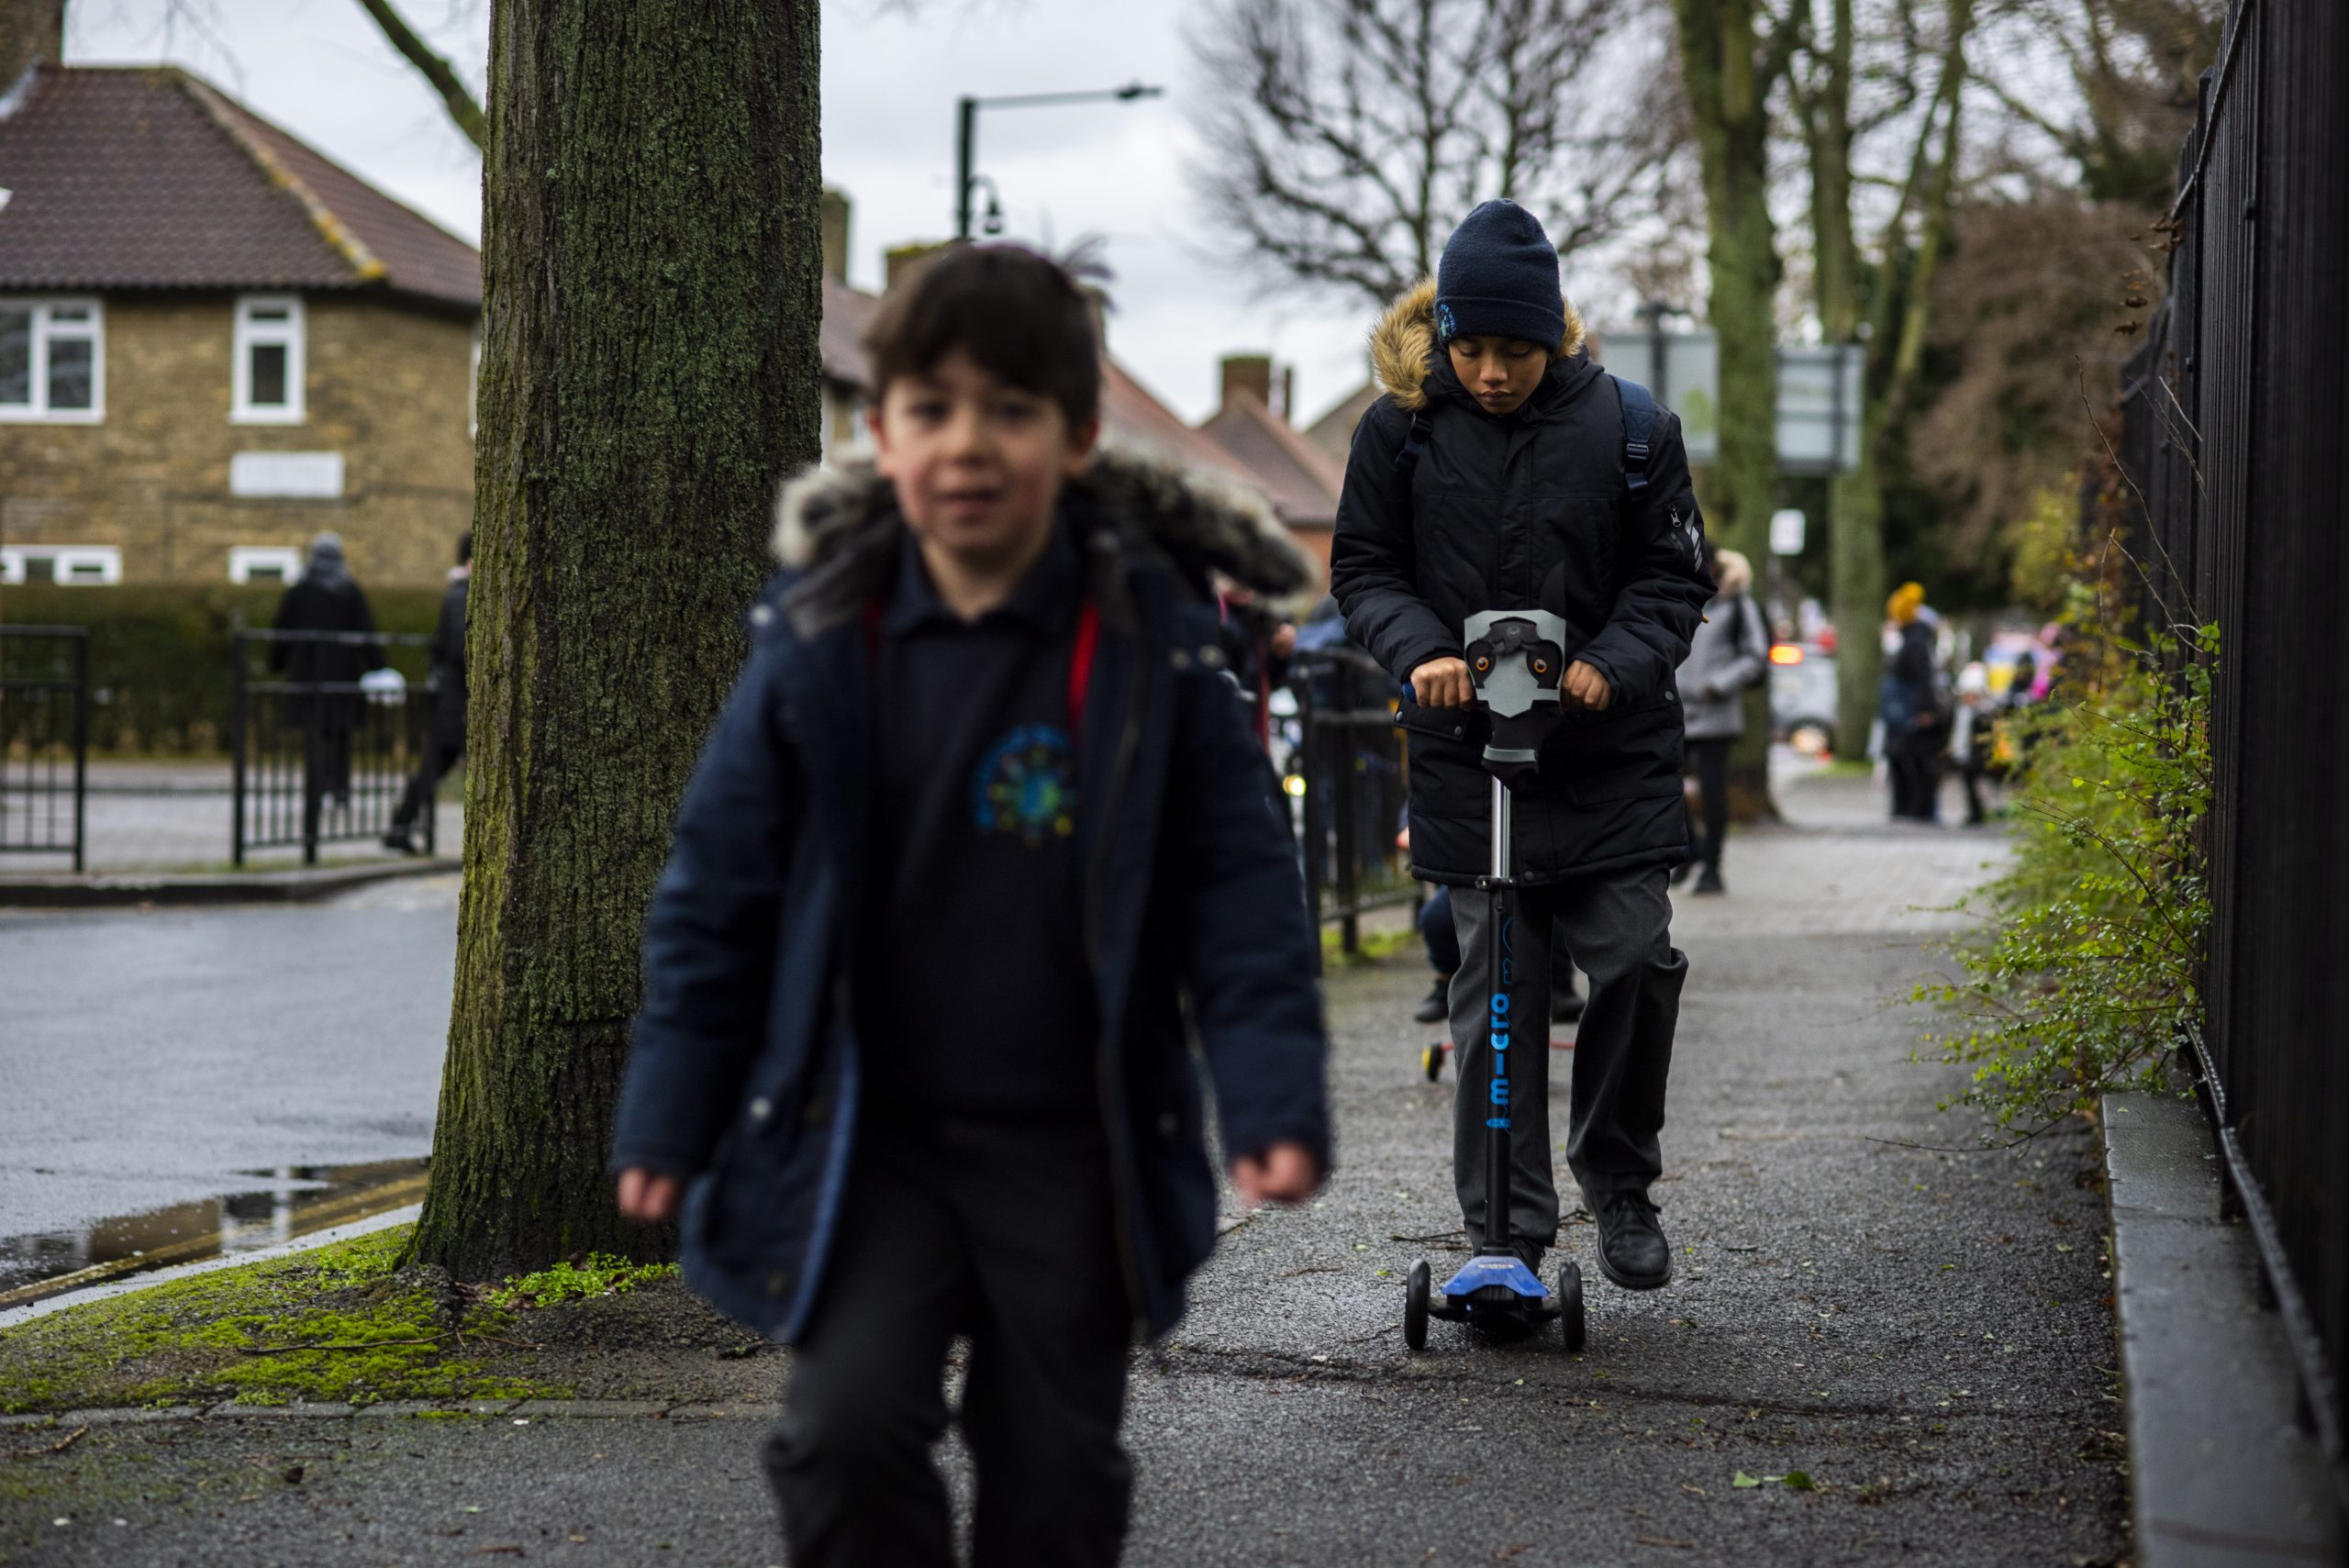 Children walking and scooting to school